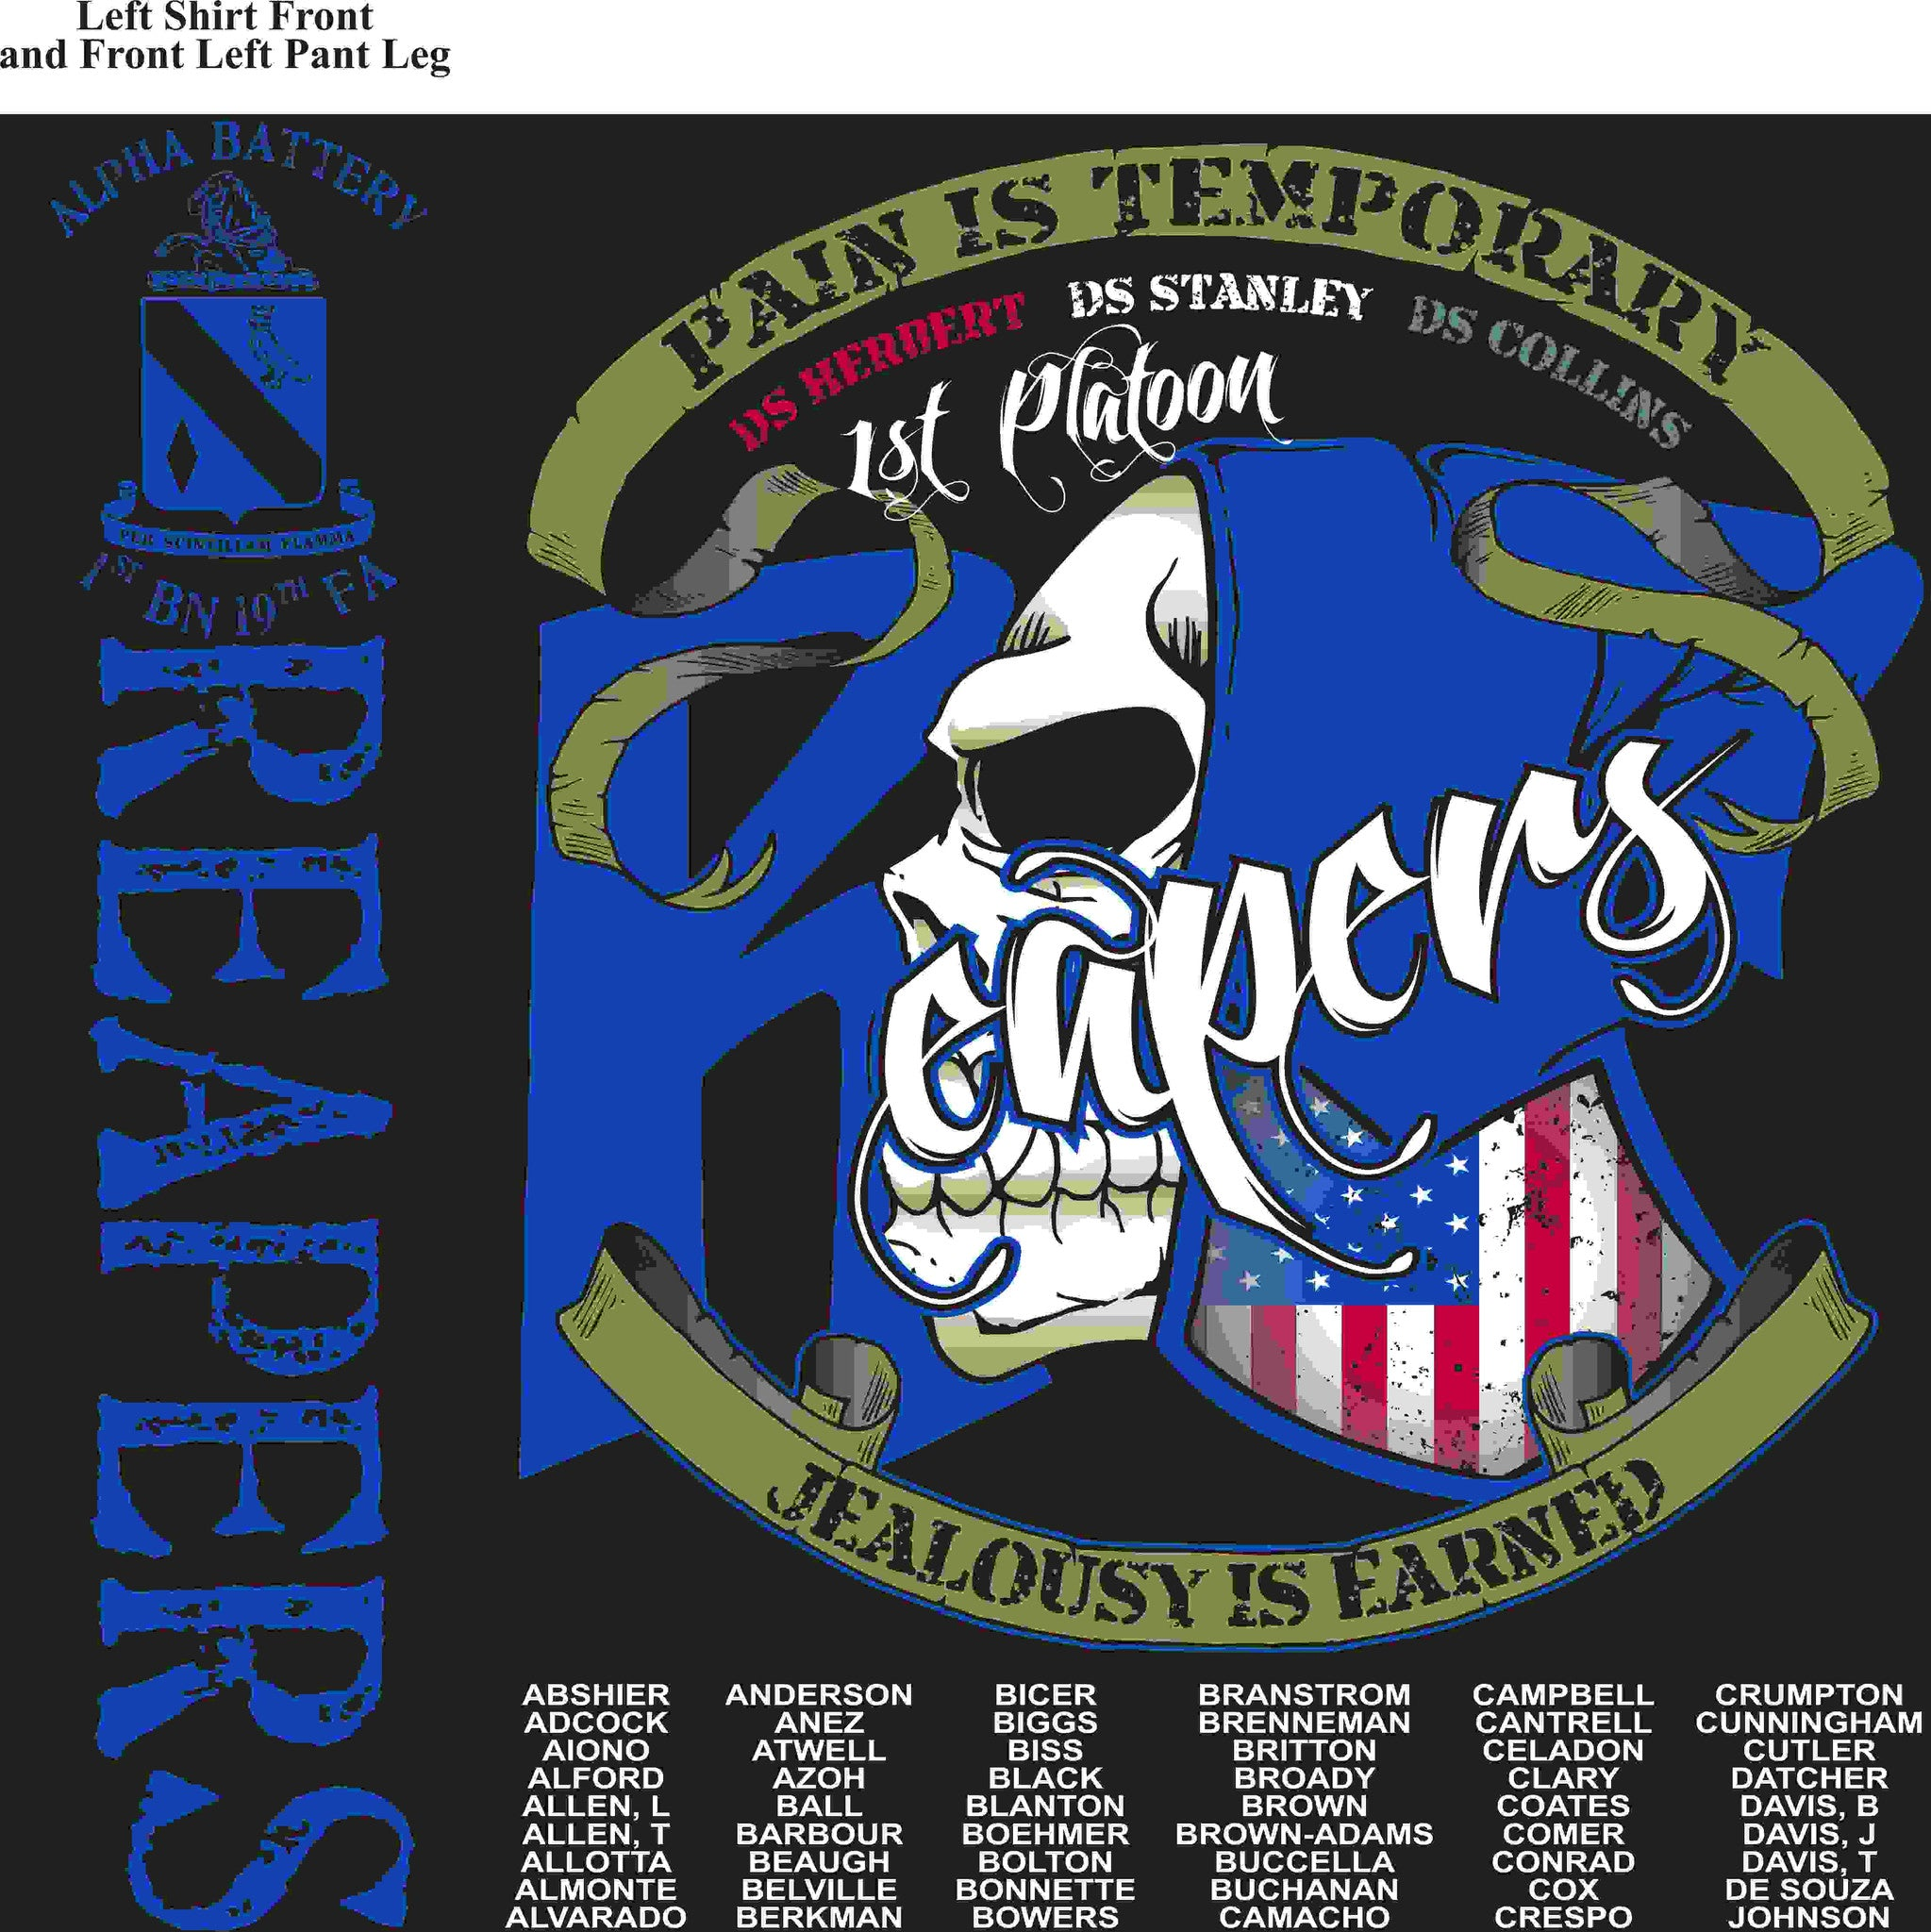 PLATOON SHIRTS (2nd generation print) ALPHA 1st 19th REAPERS MAR 2016